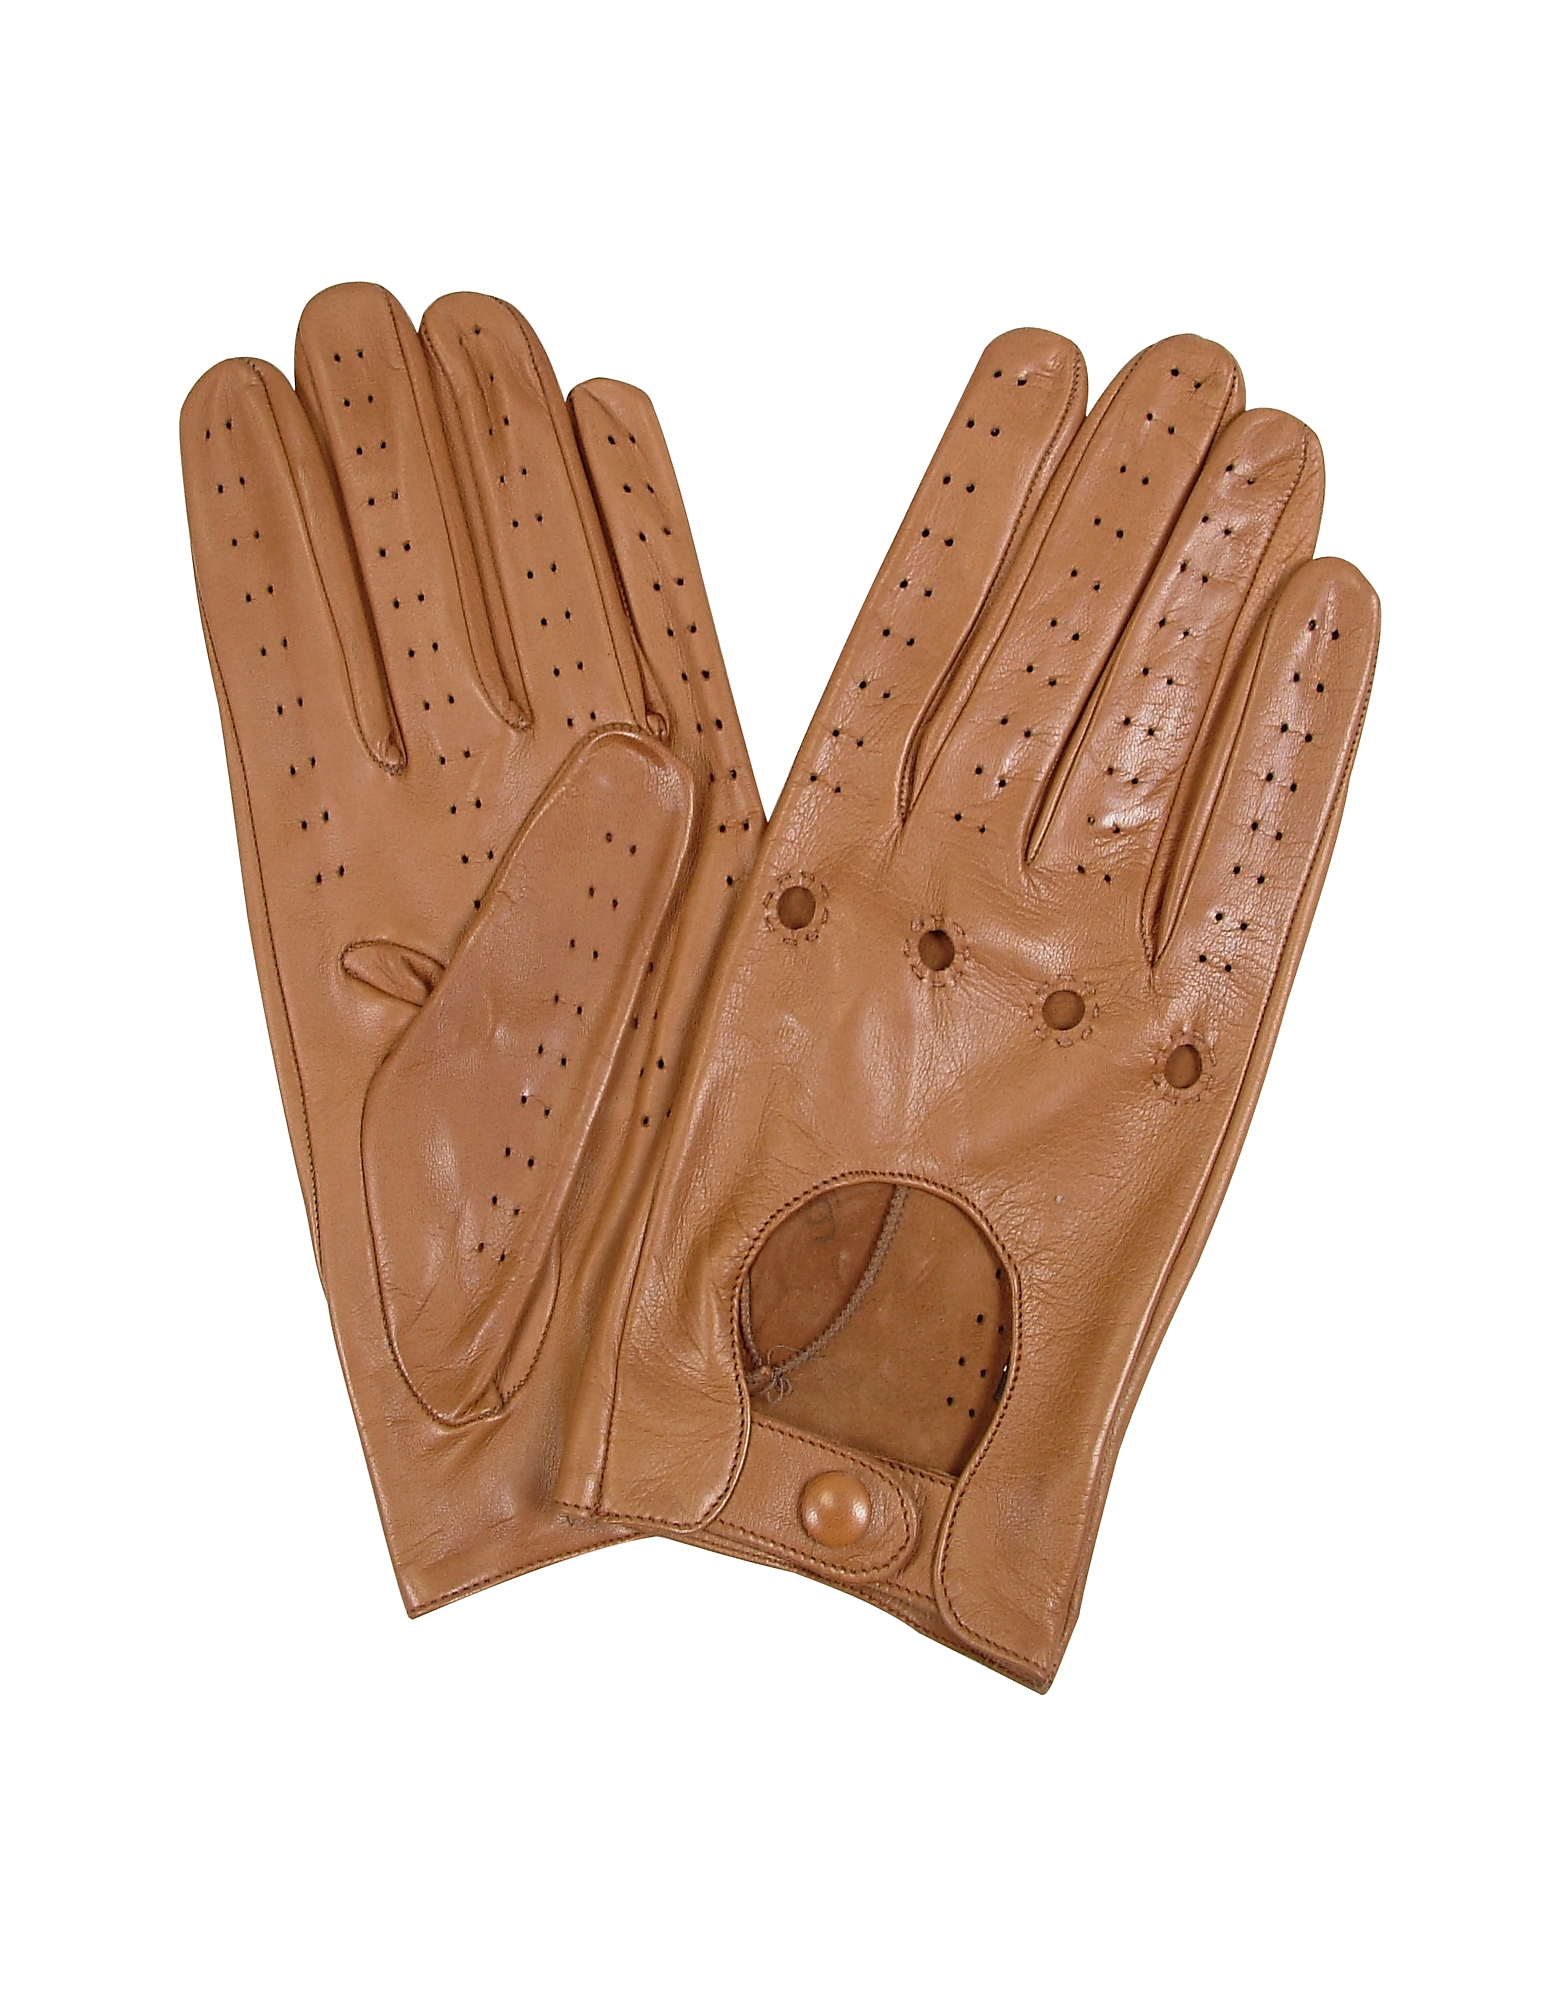 Forzieri Women's Gloves, Women's Tan Perforated Italian Leather Driving Gloves